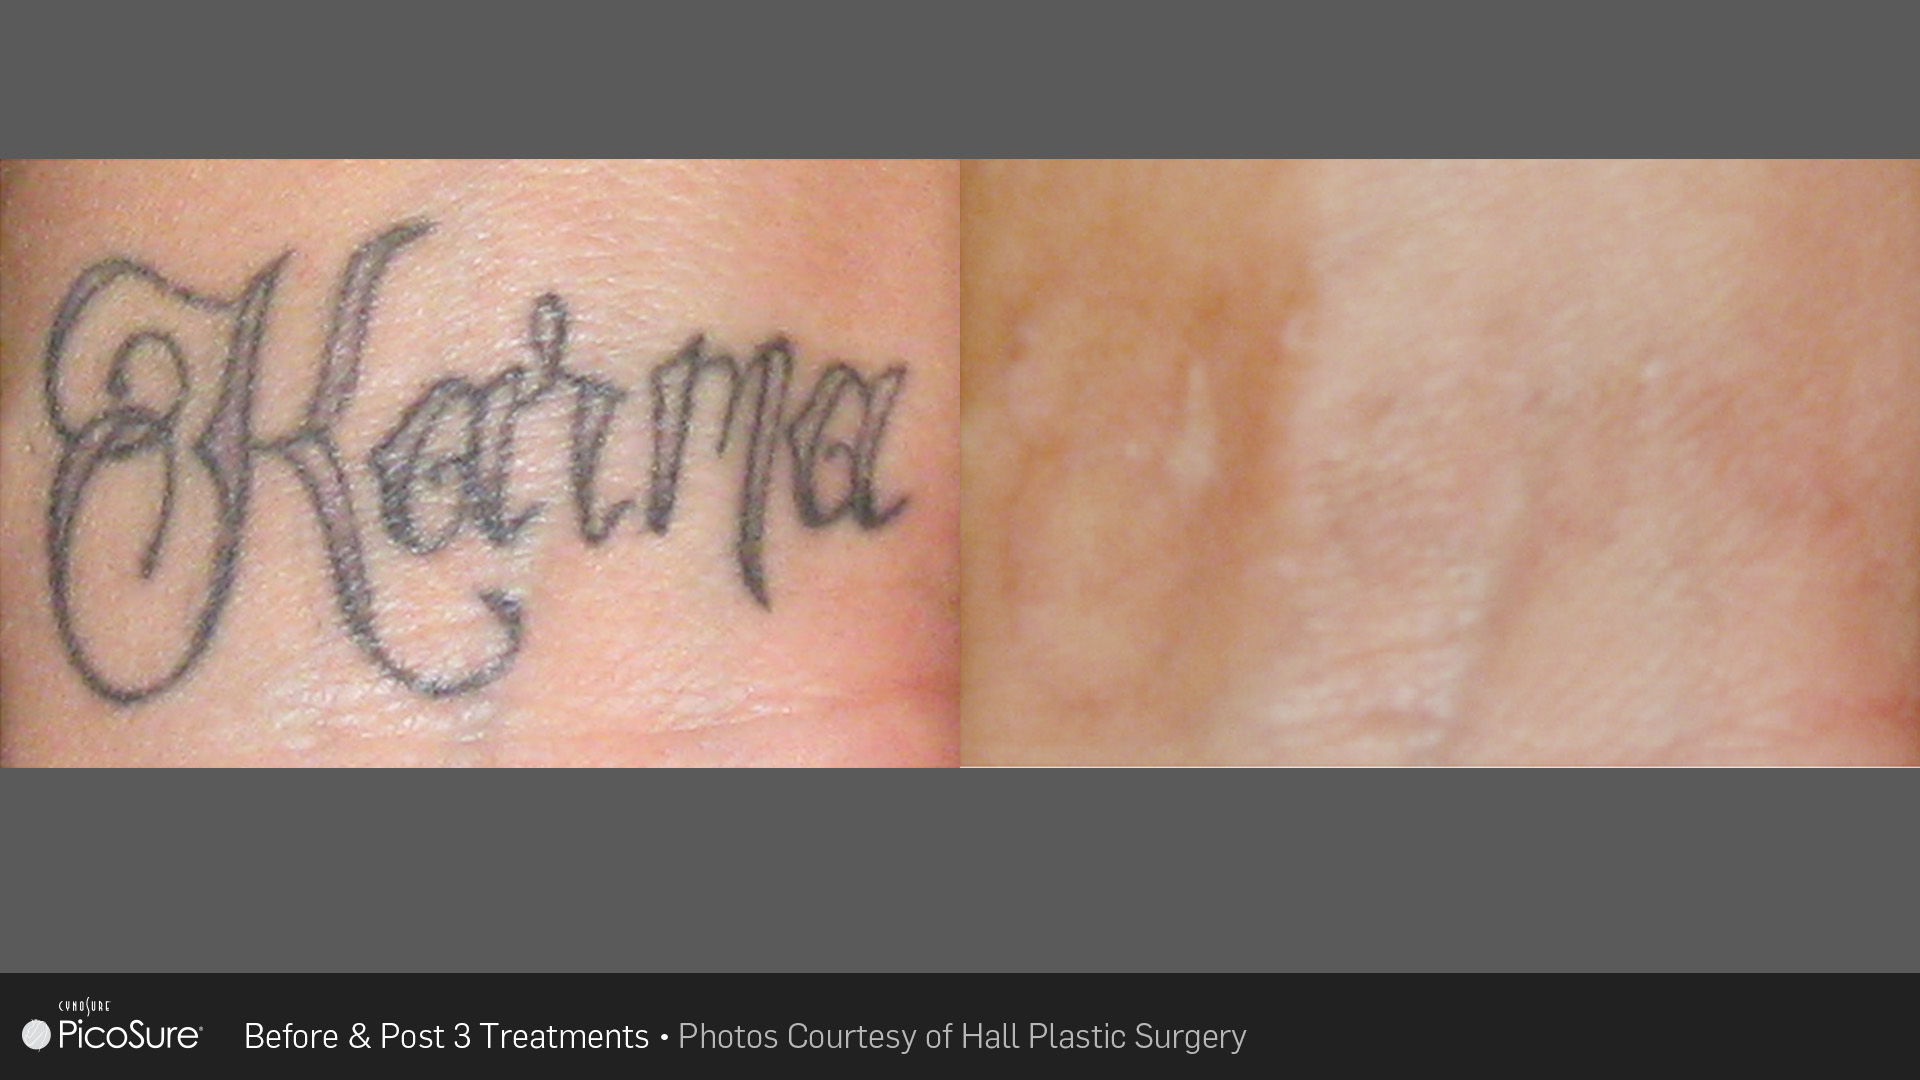 Laser Tattoo Removal – Lawrence Fortier MD